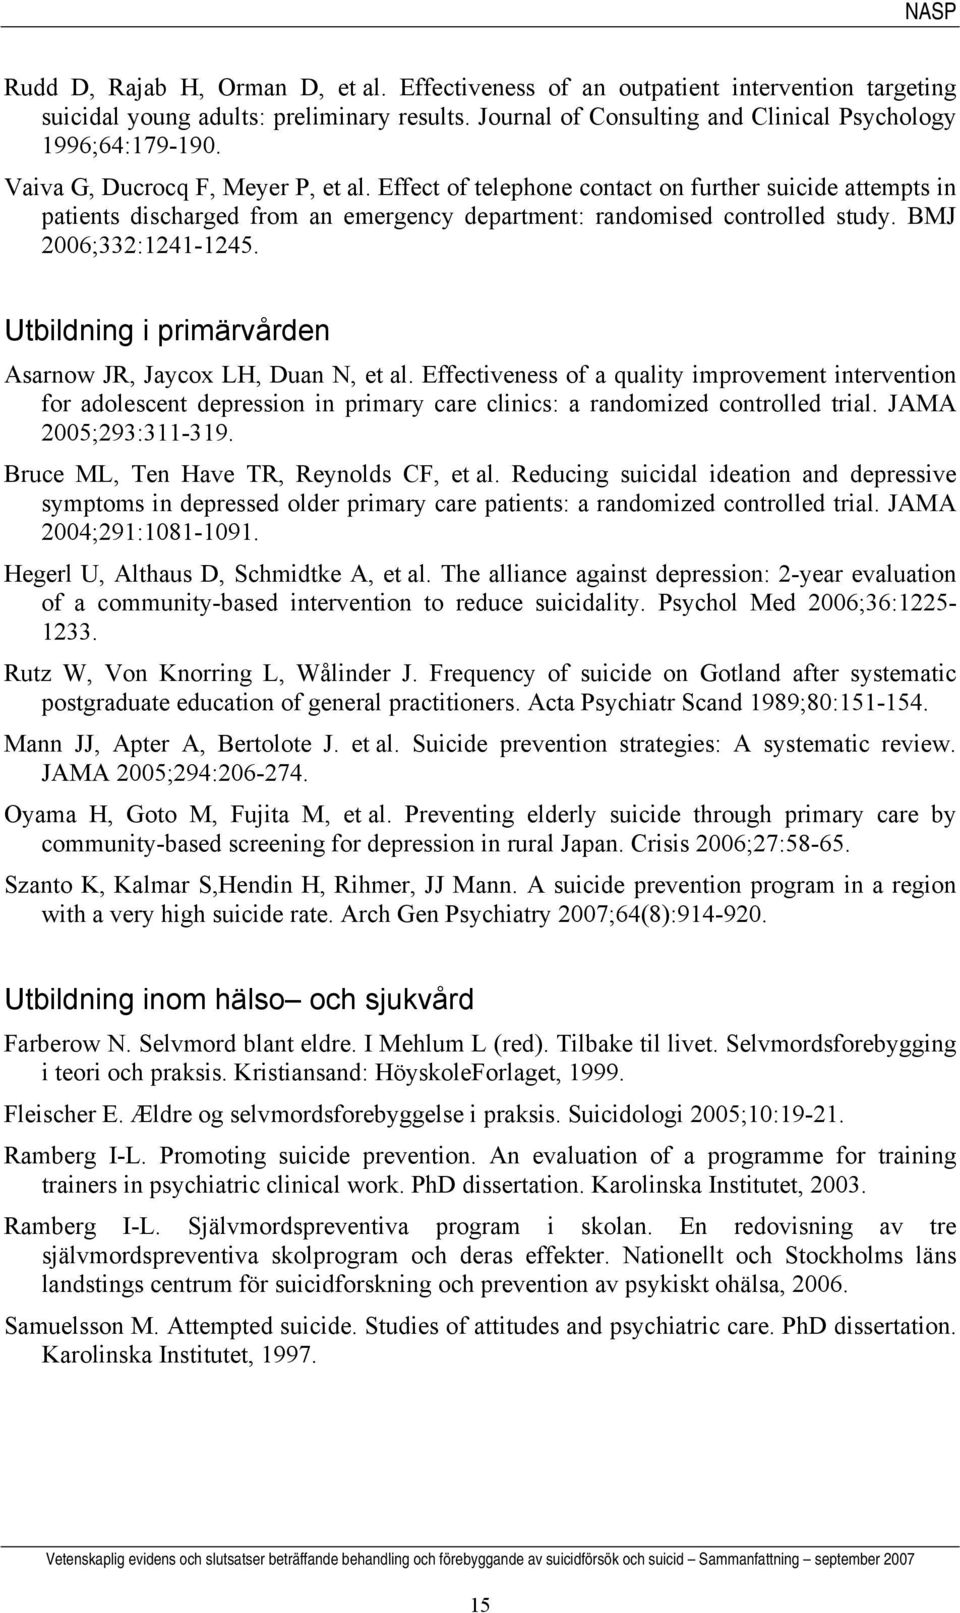 Utbildning i primärvården Asarnow JR, Jaycox LH, Duan N, et al. Effectiveness of a quality improvement intervention for adolescent depression in primary care clinics: a randomized controlled trial.